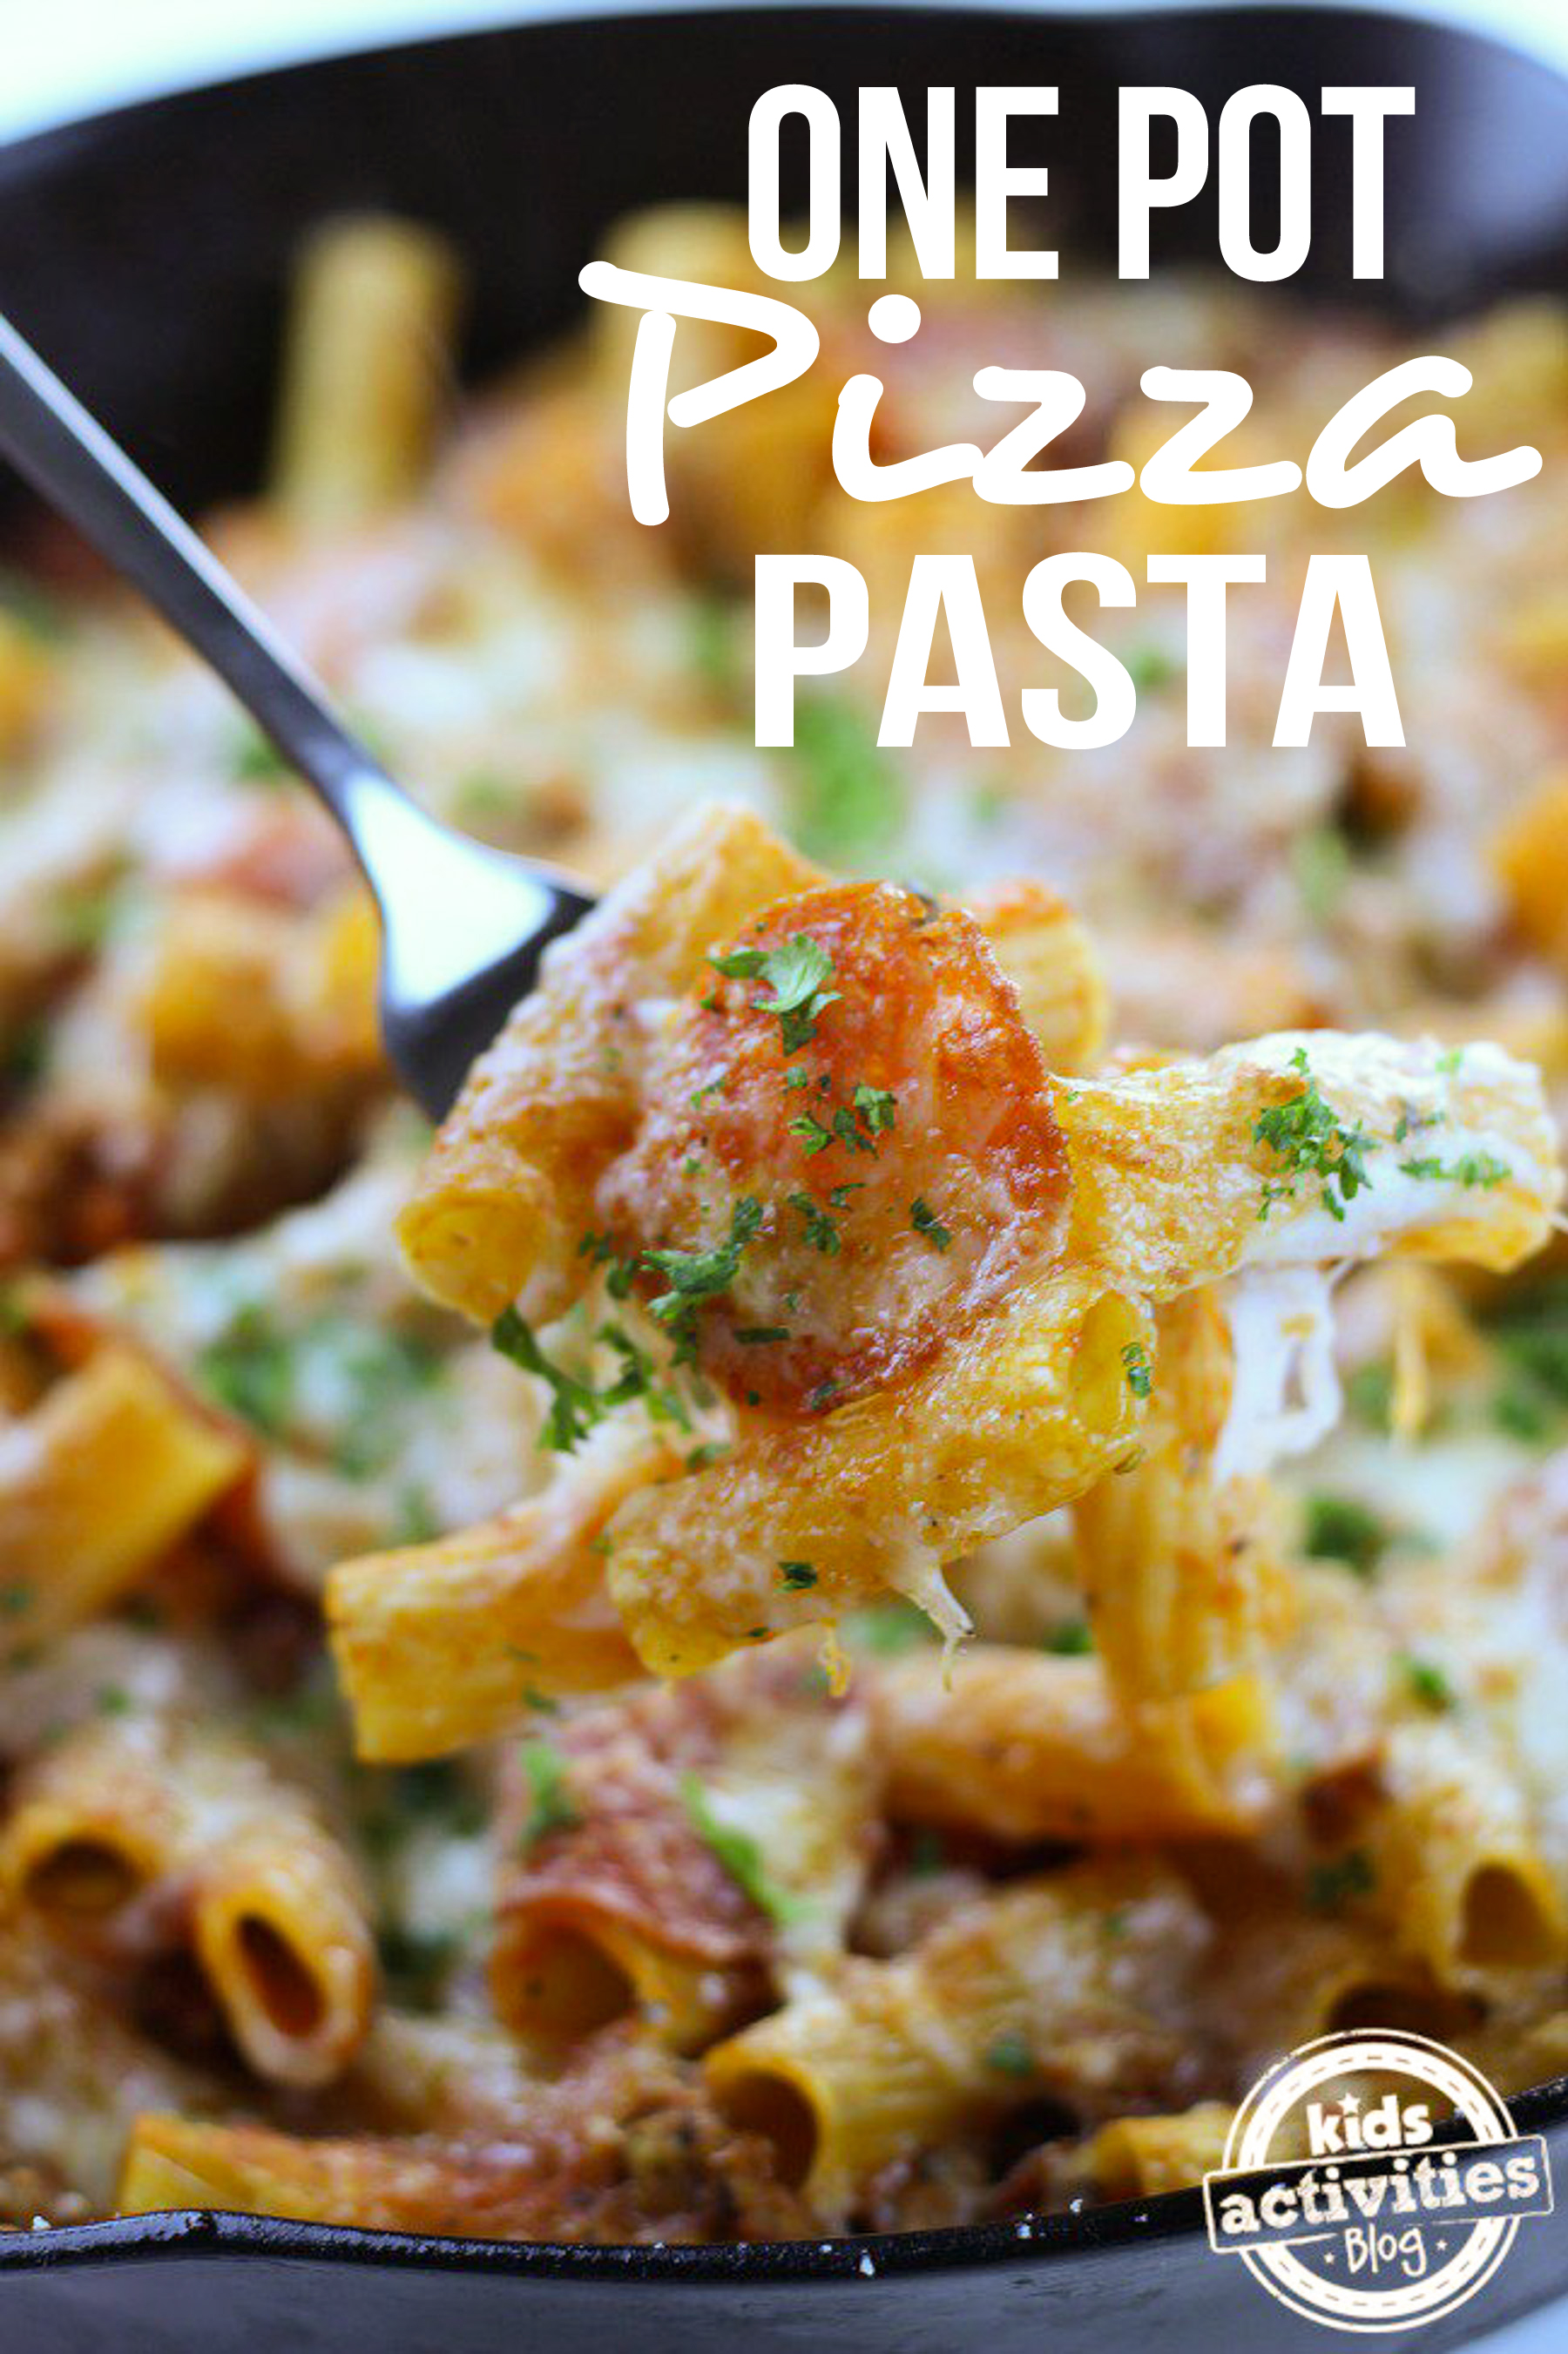 One Pot Pizza Pasta for Kids